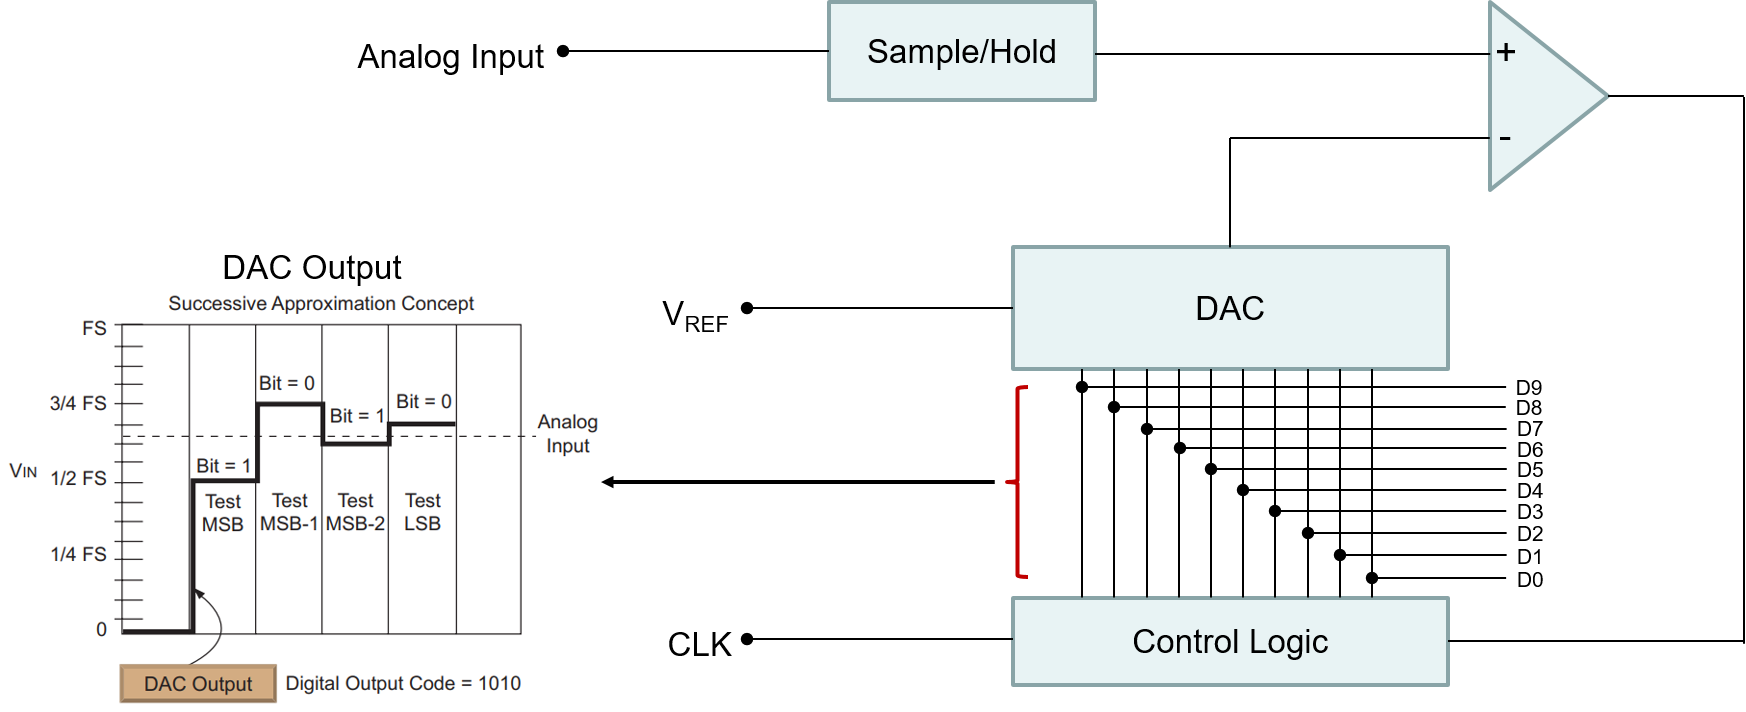 sar-adc-block-diagram.png